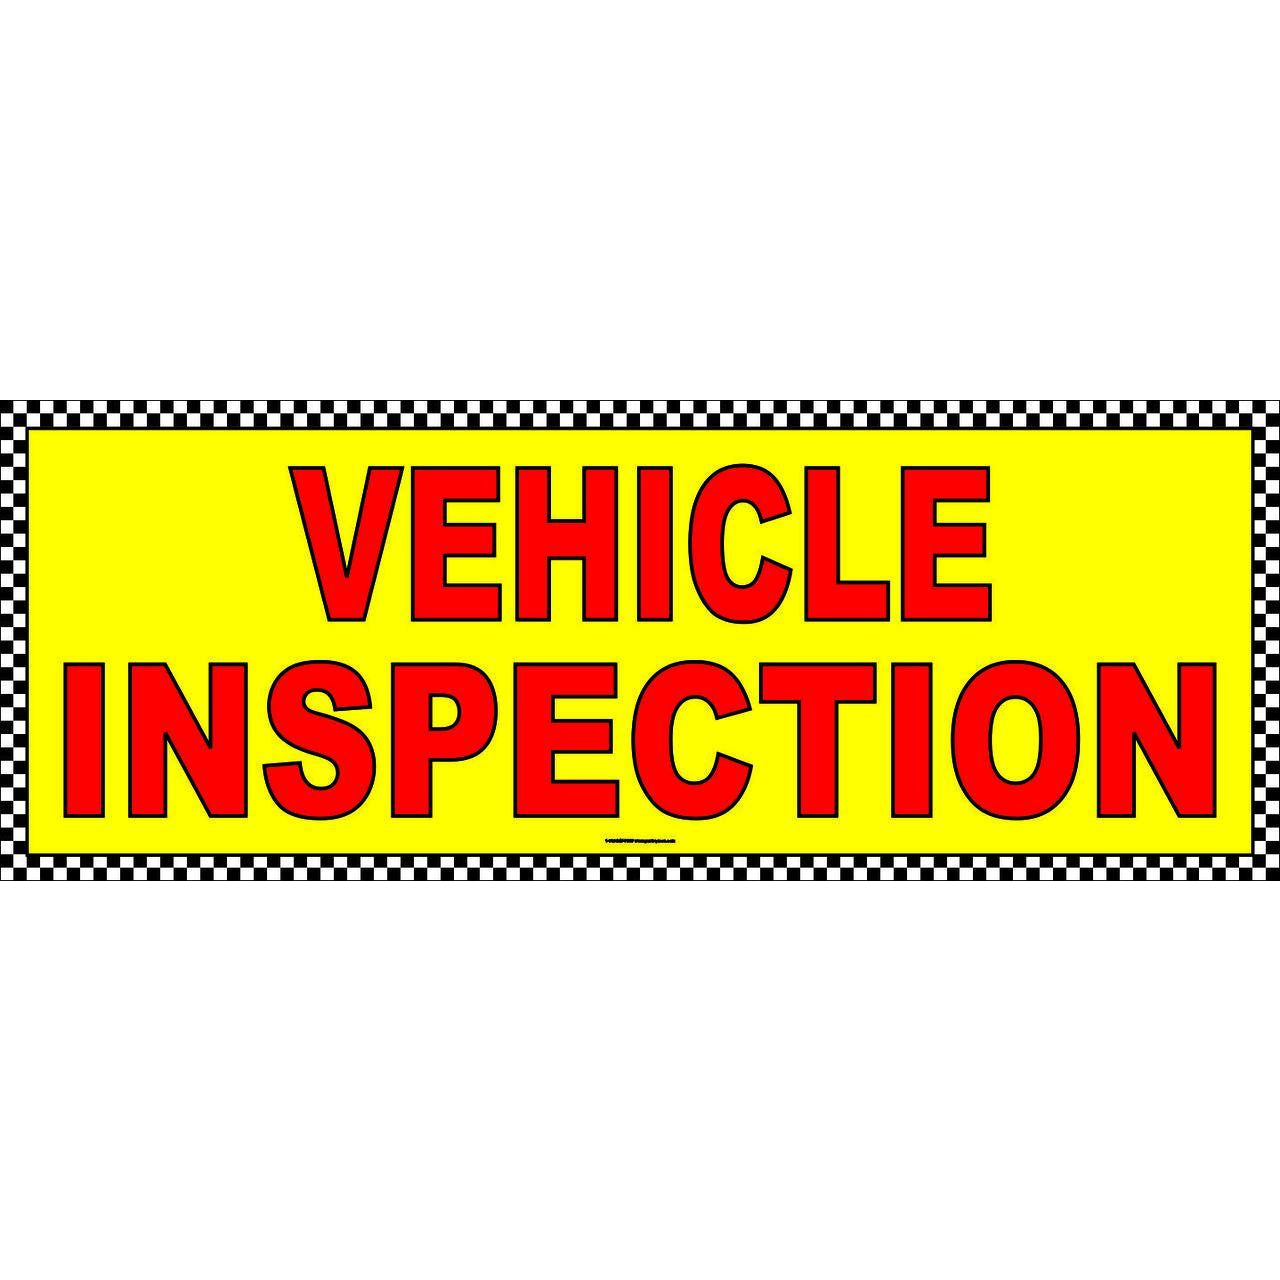 VEHICLE INSPECTION BANNER AB703CHK